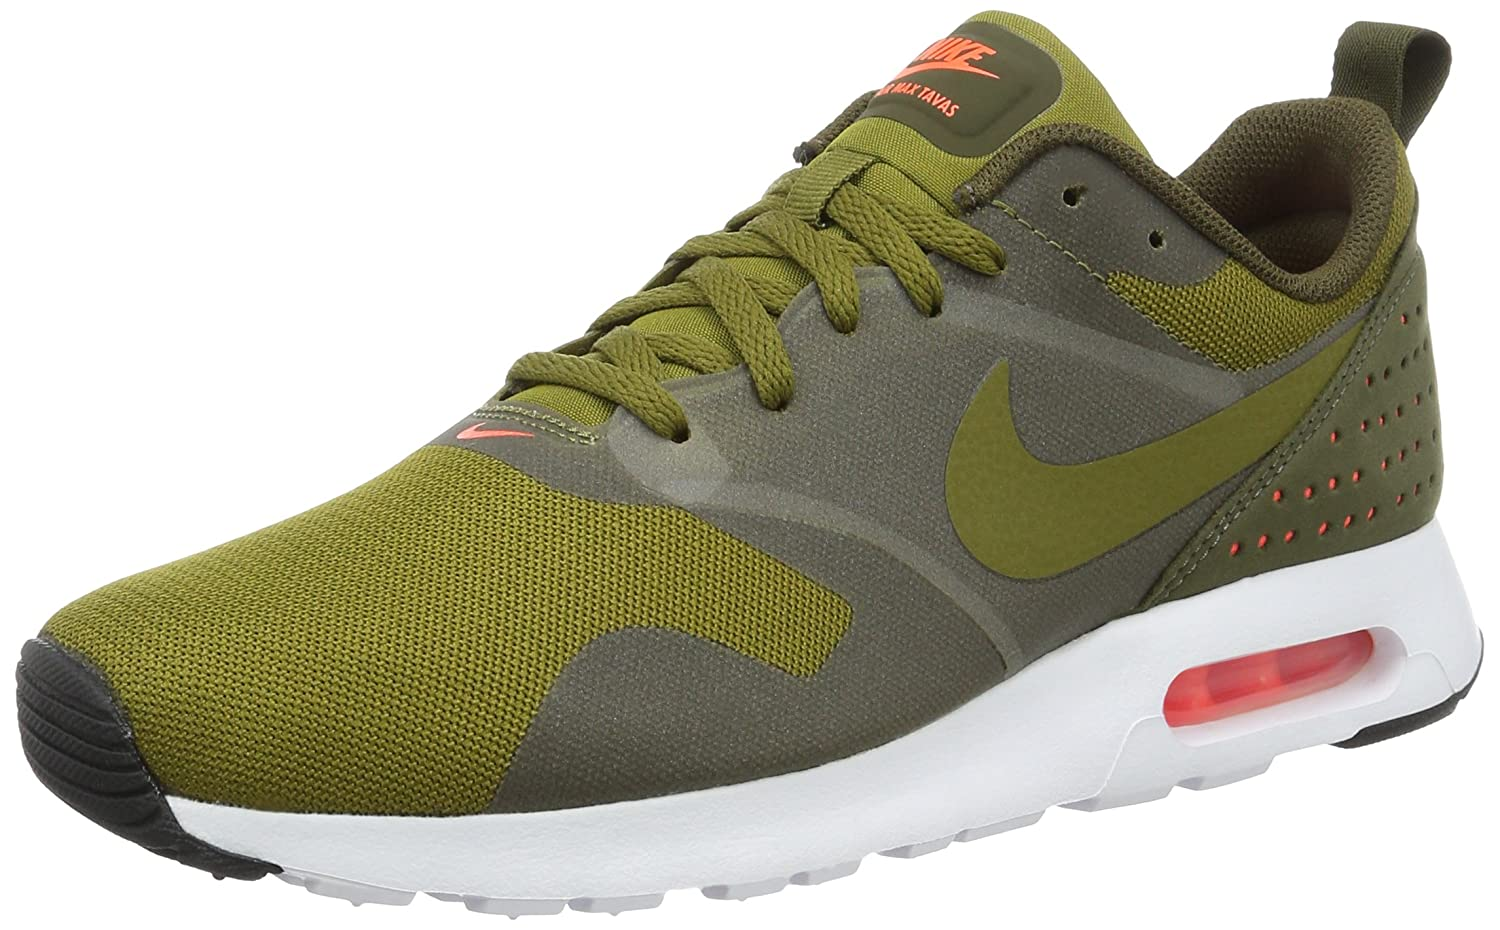 145a92235c4 Nike Men s Air Max Tavas Olive Flak Olv Flk Drk Ldn Wht Running Shoe 8 Men  US  Buy Online at Low Prices in India - Amazon.in